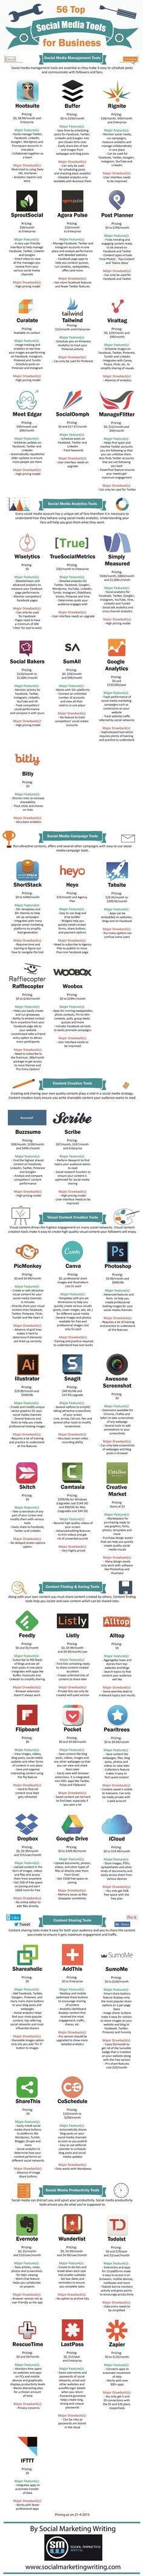 56 Top Social Media Tools for Business  [by Social Marketing Writing -- via #tipsographic]. More at tipsographic.com